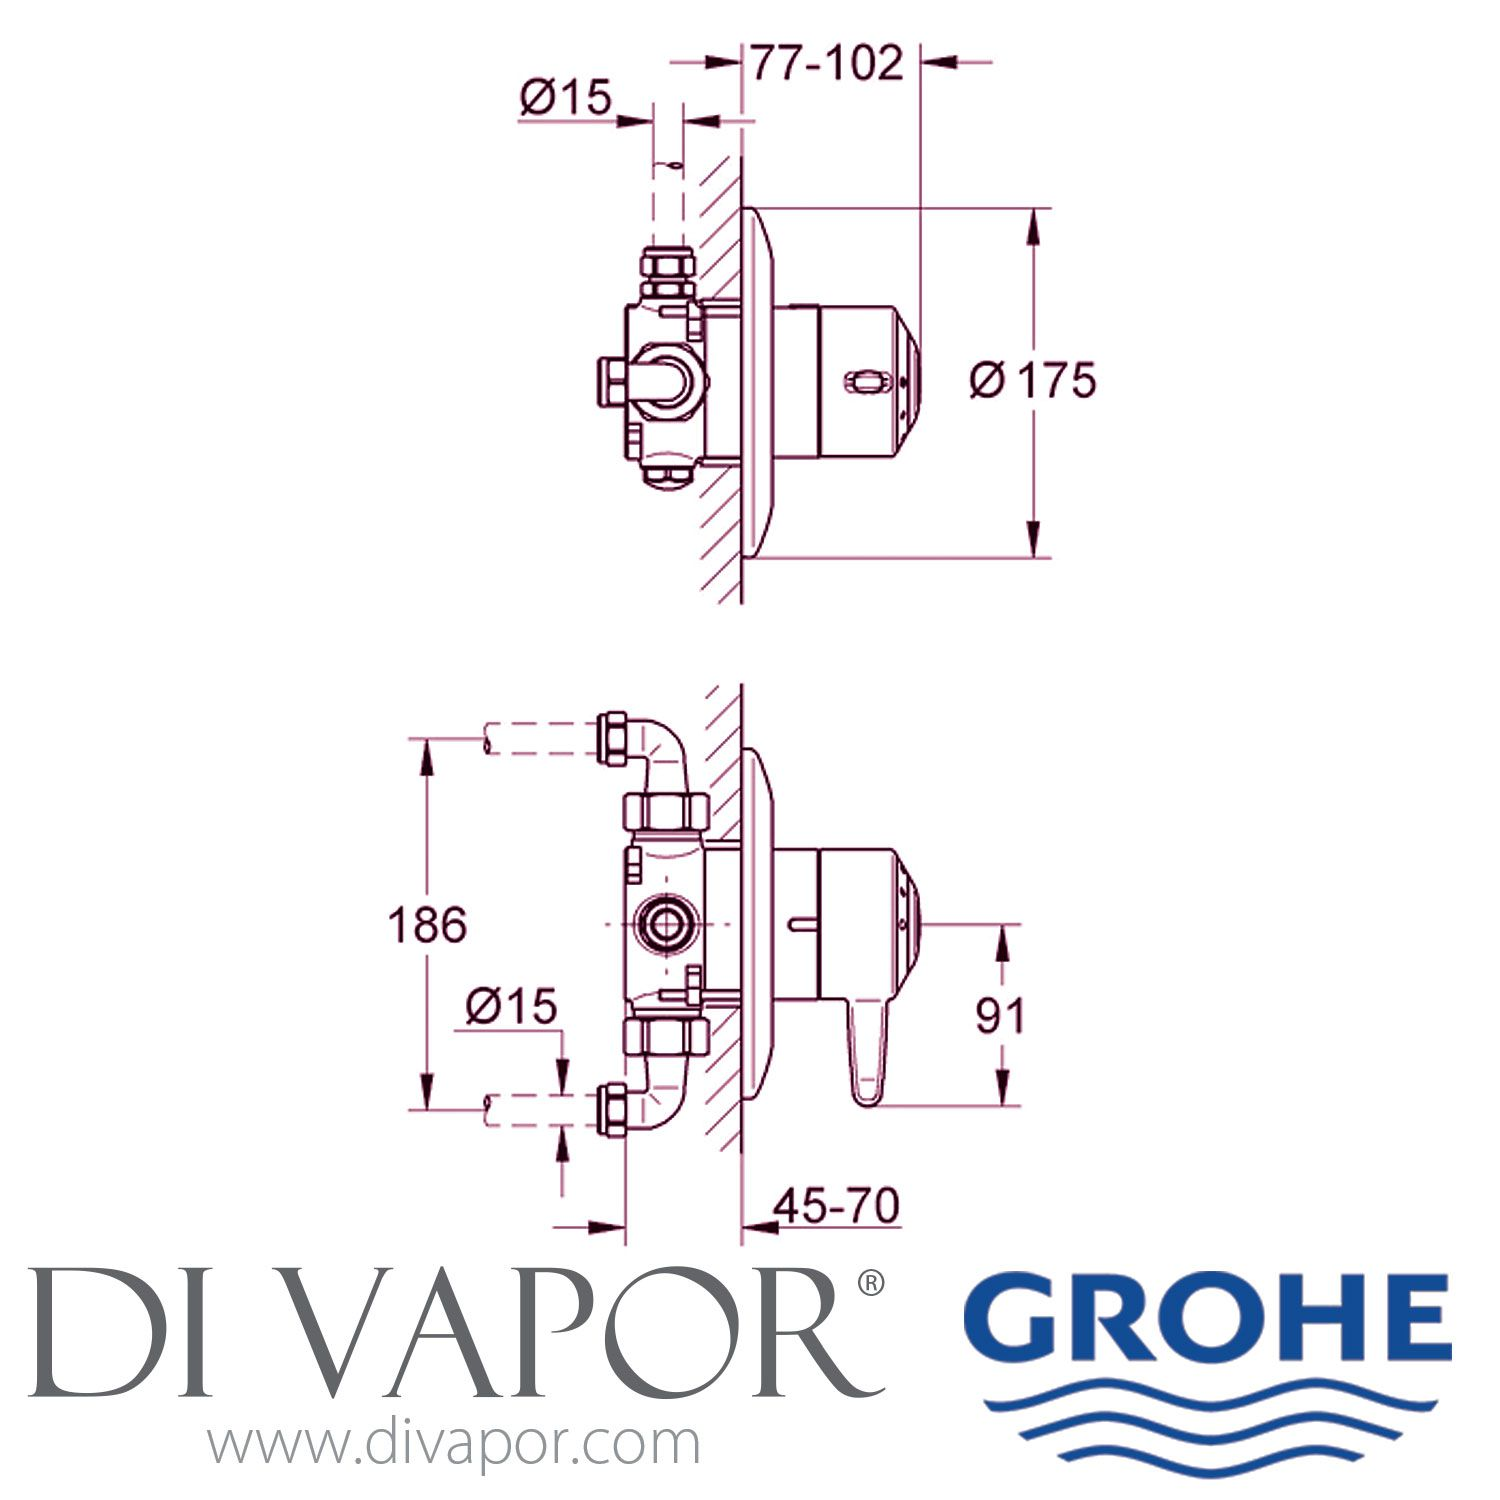 Grohe 34041il0 Avensys 1 2 Concealed Single Control Shower Mixer